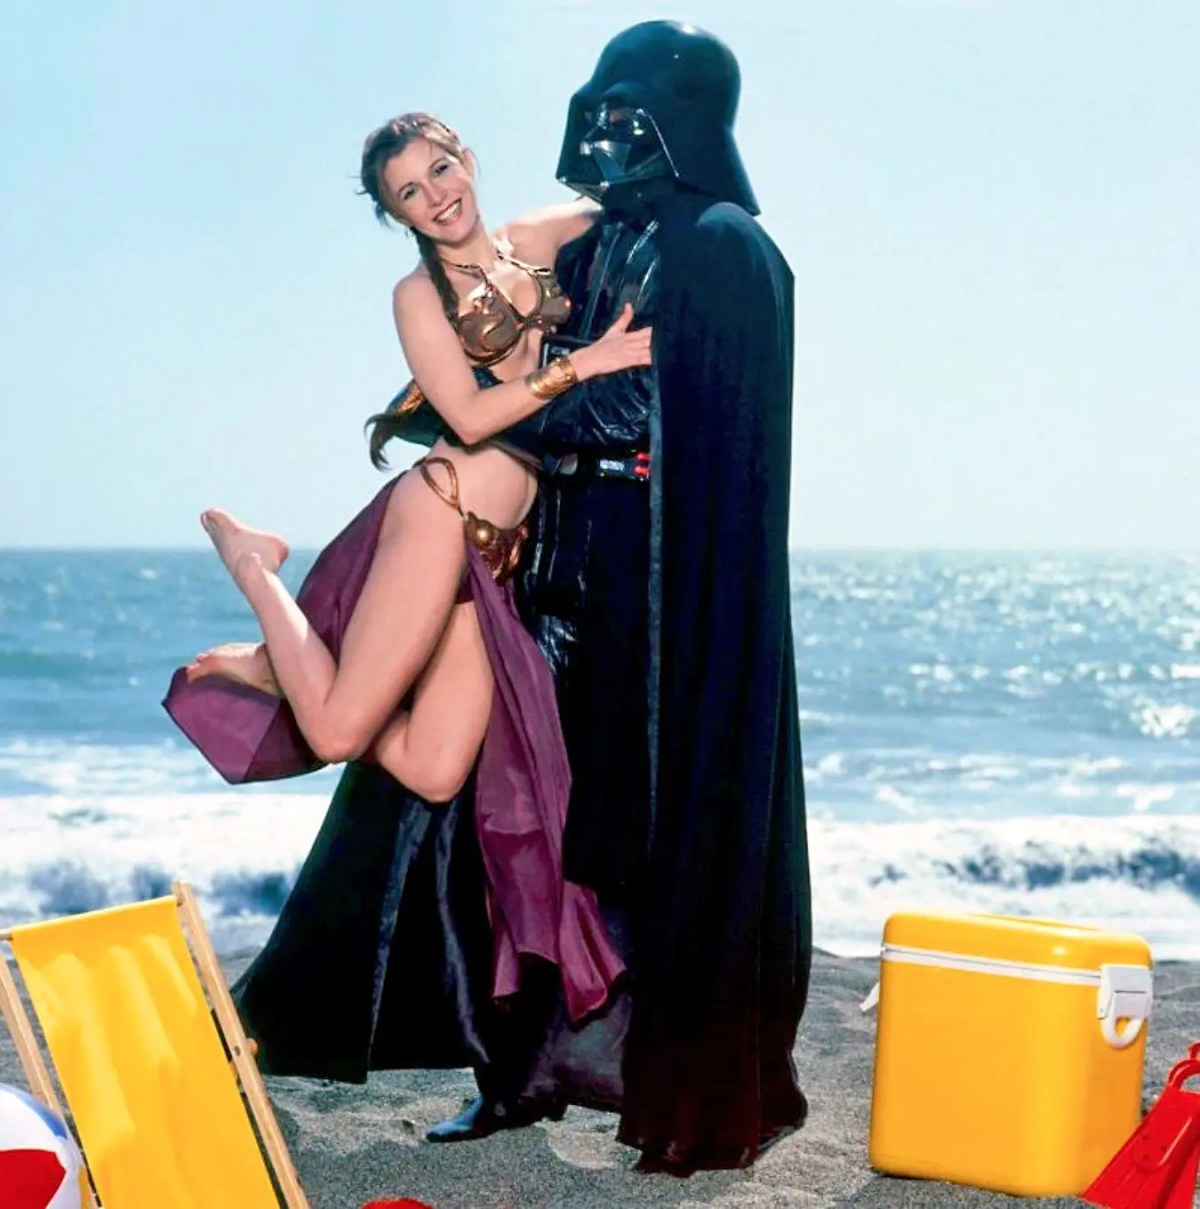 Playful 1983 Return of the Jedi Promo Photo - Slave Leia Jumping Into Darth Vader's Arms on the Beach